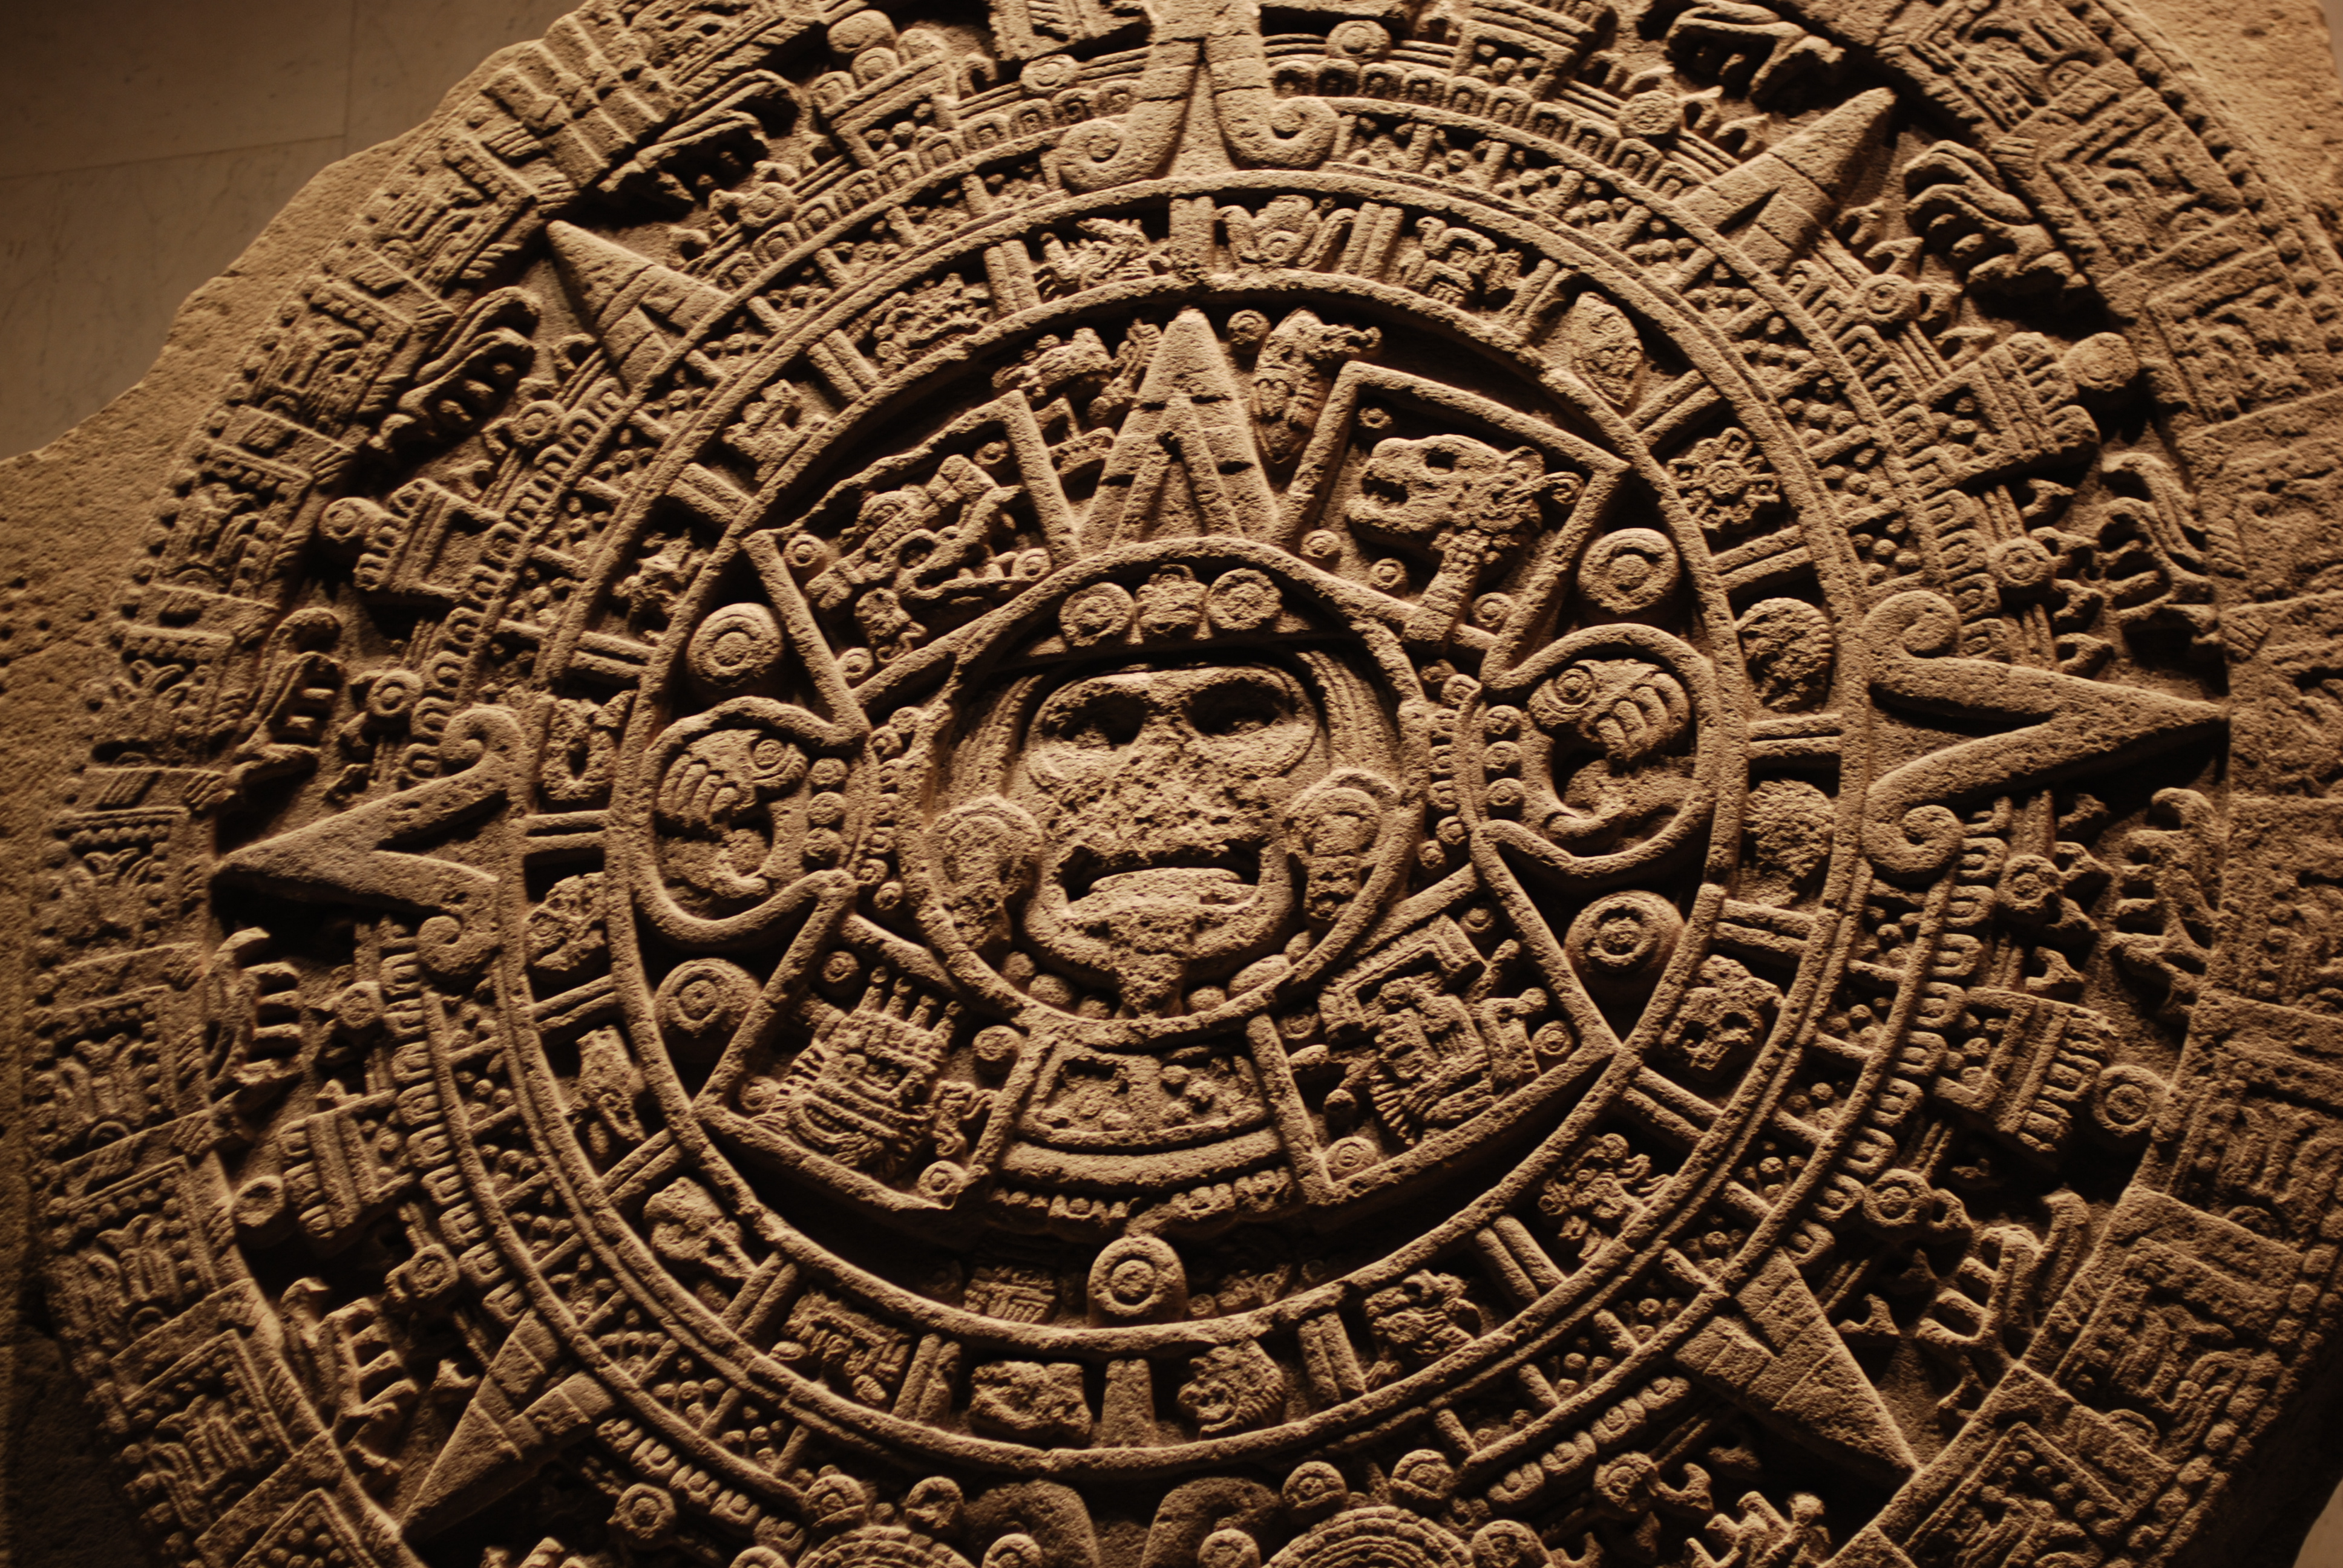 Aztec Calendar Wallpaper Backgrounds : Hd mayan wallpapers wallpapersafari